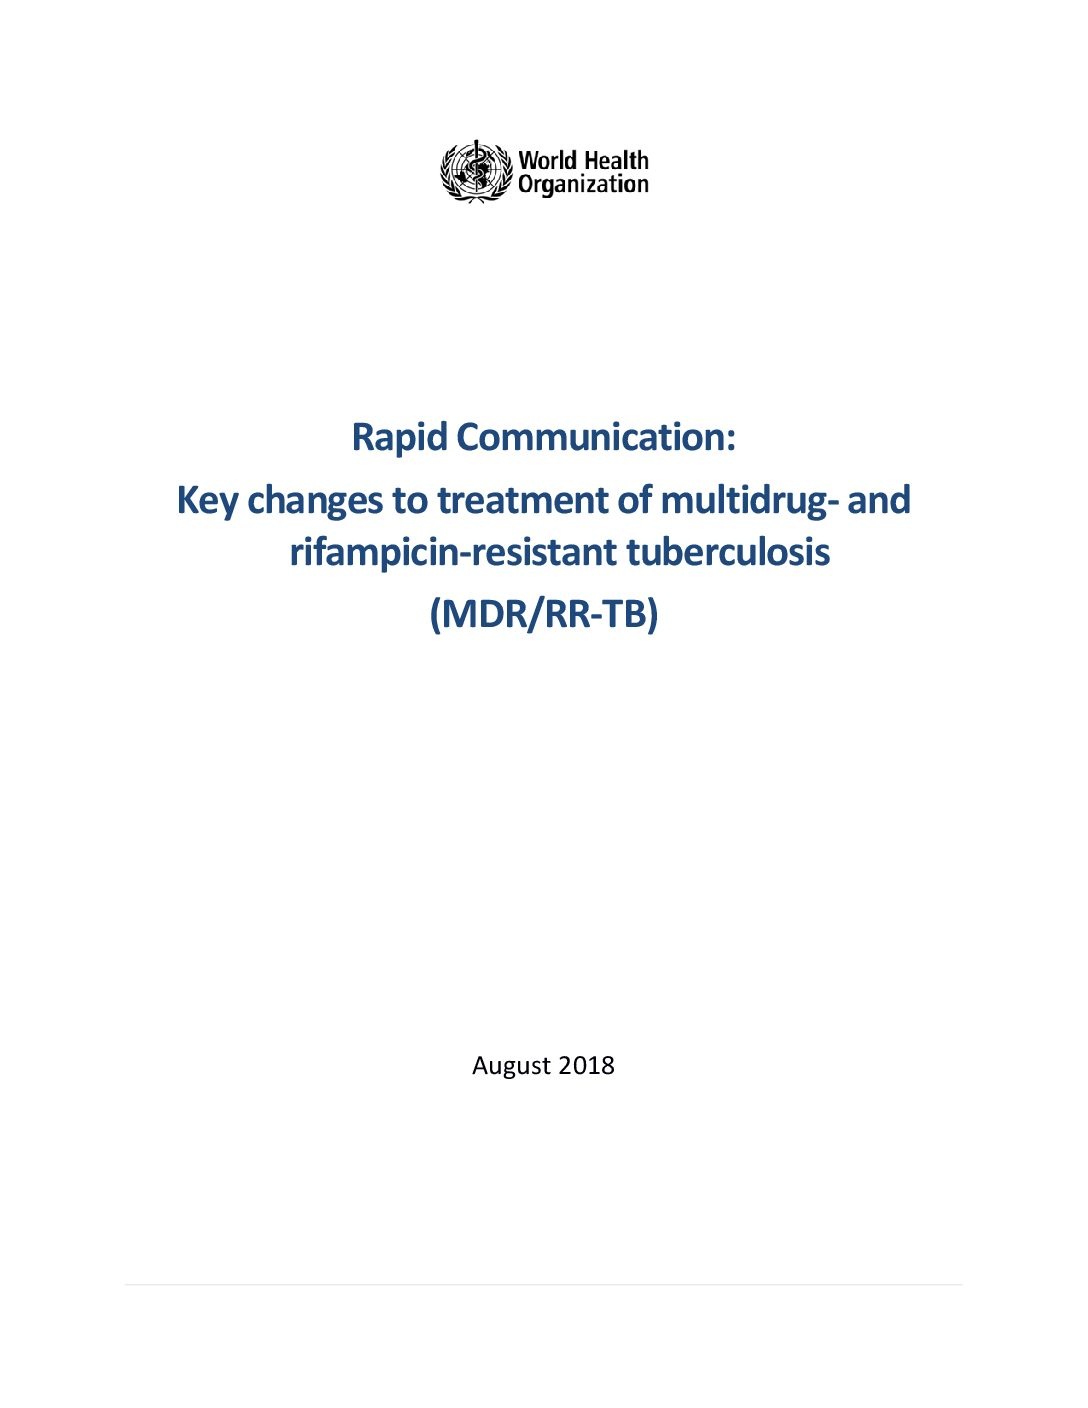 Rapid Communication: Key changes to treatment of multidrug- and rifampicin-resistant tuberculosis (MDR/RR-TB)